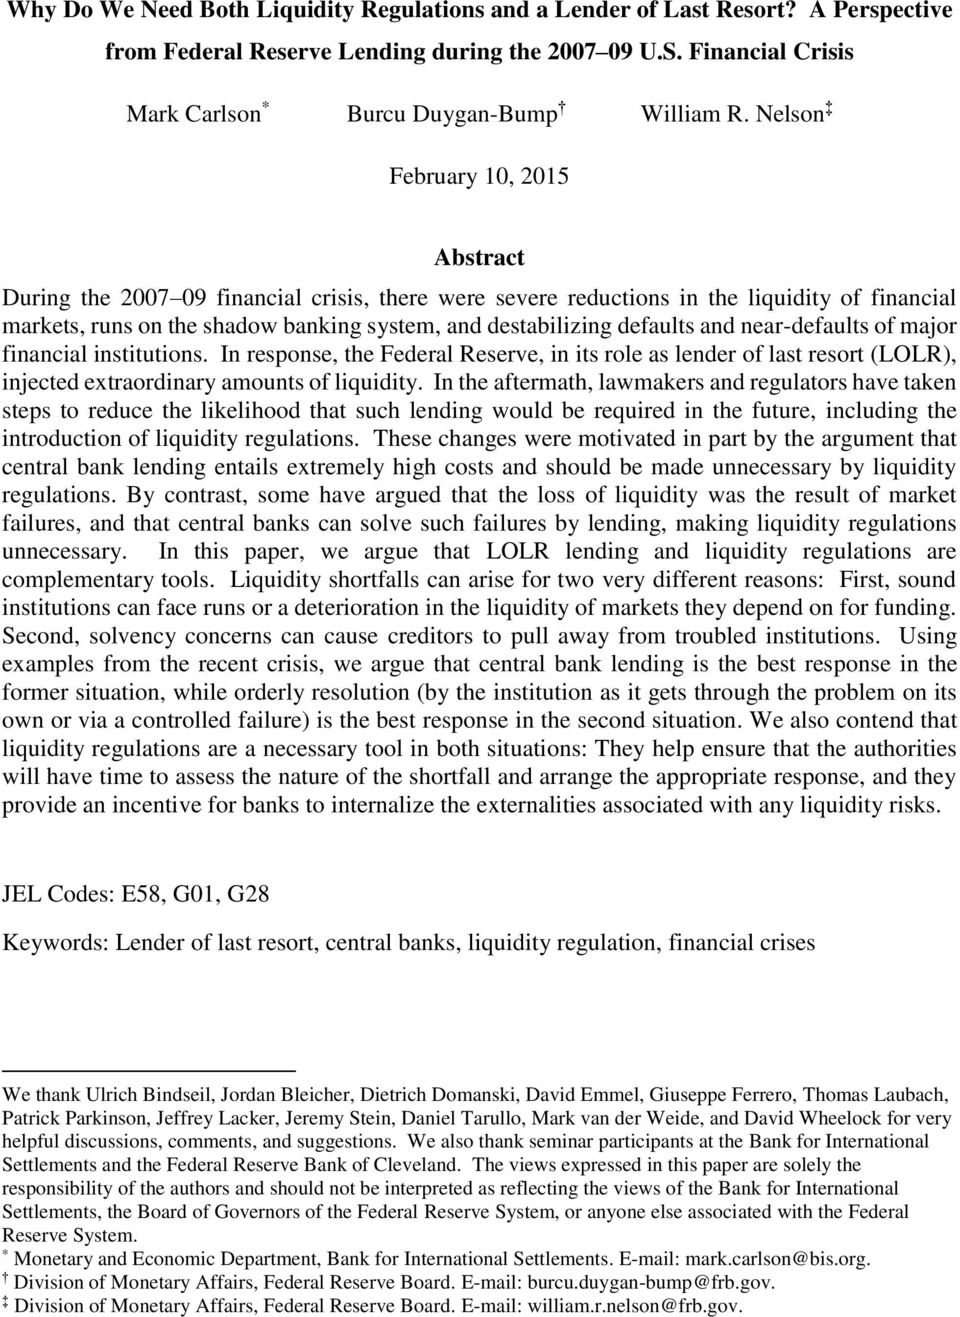 defaults and near-defaults of major financial institutions. In response, the Federal Reserve, in its role as lender of last resort (LOLR), injected extraordinary amounts of liquidity.